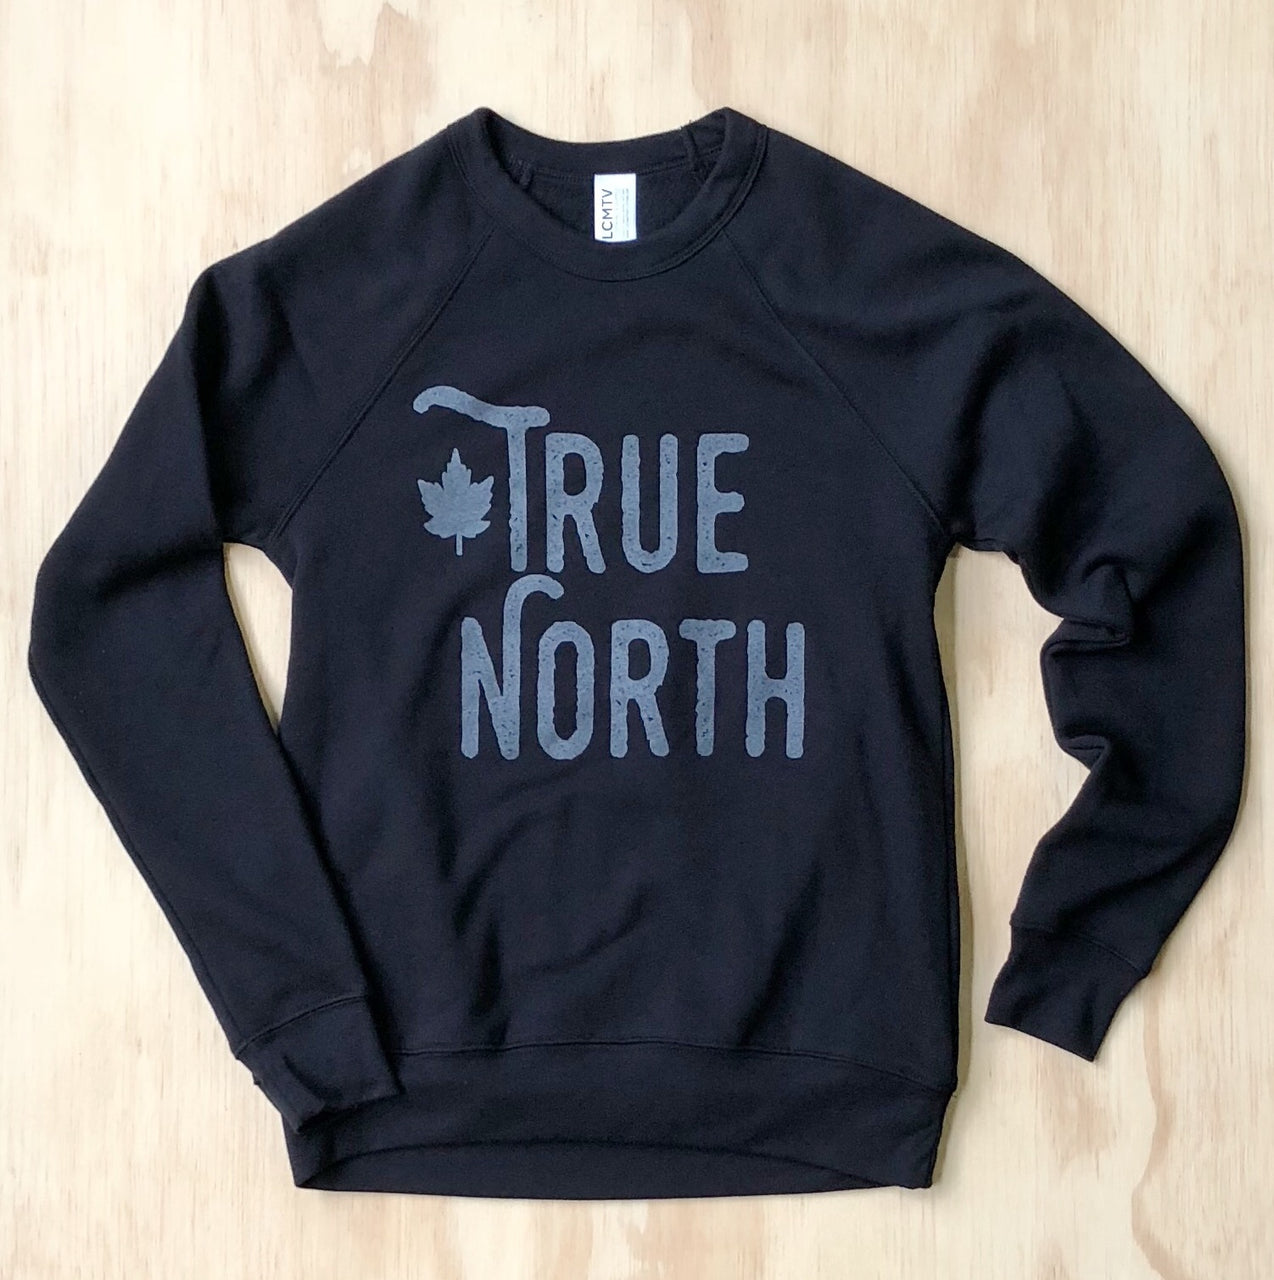 True North Crew Sweatshirt - Unisex